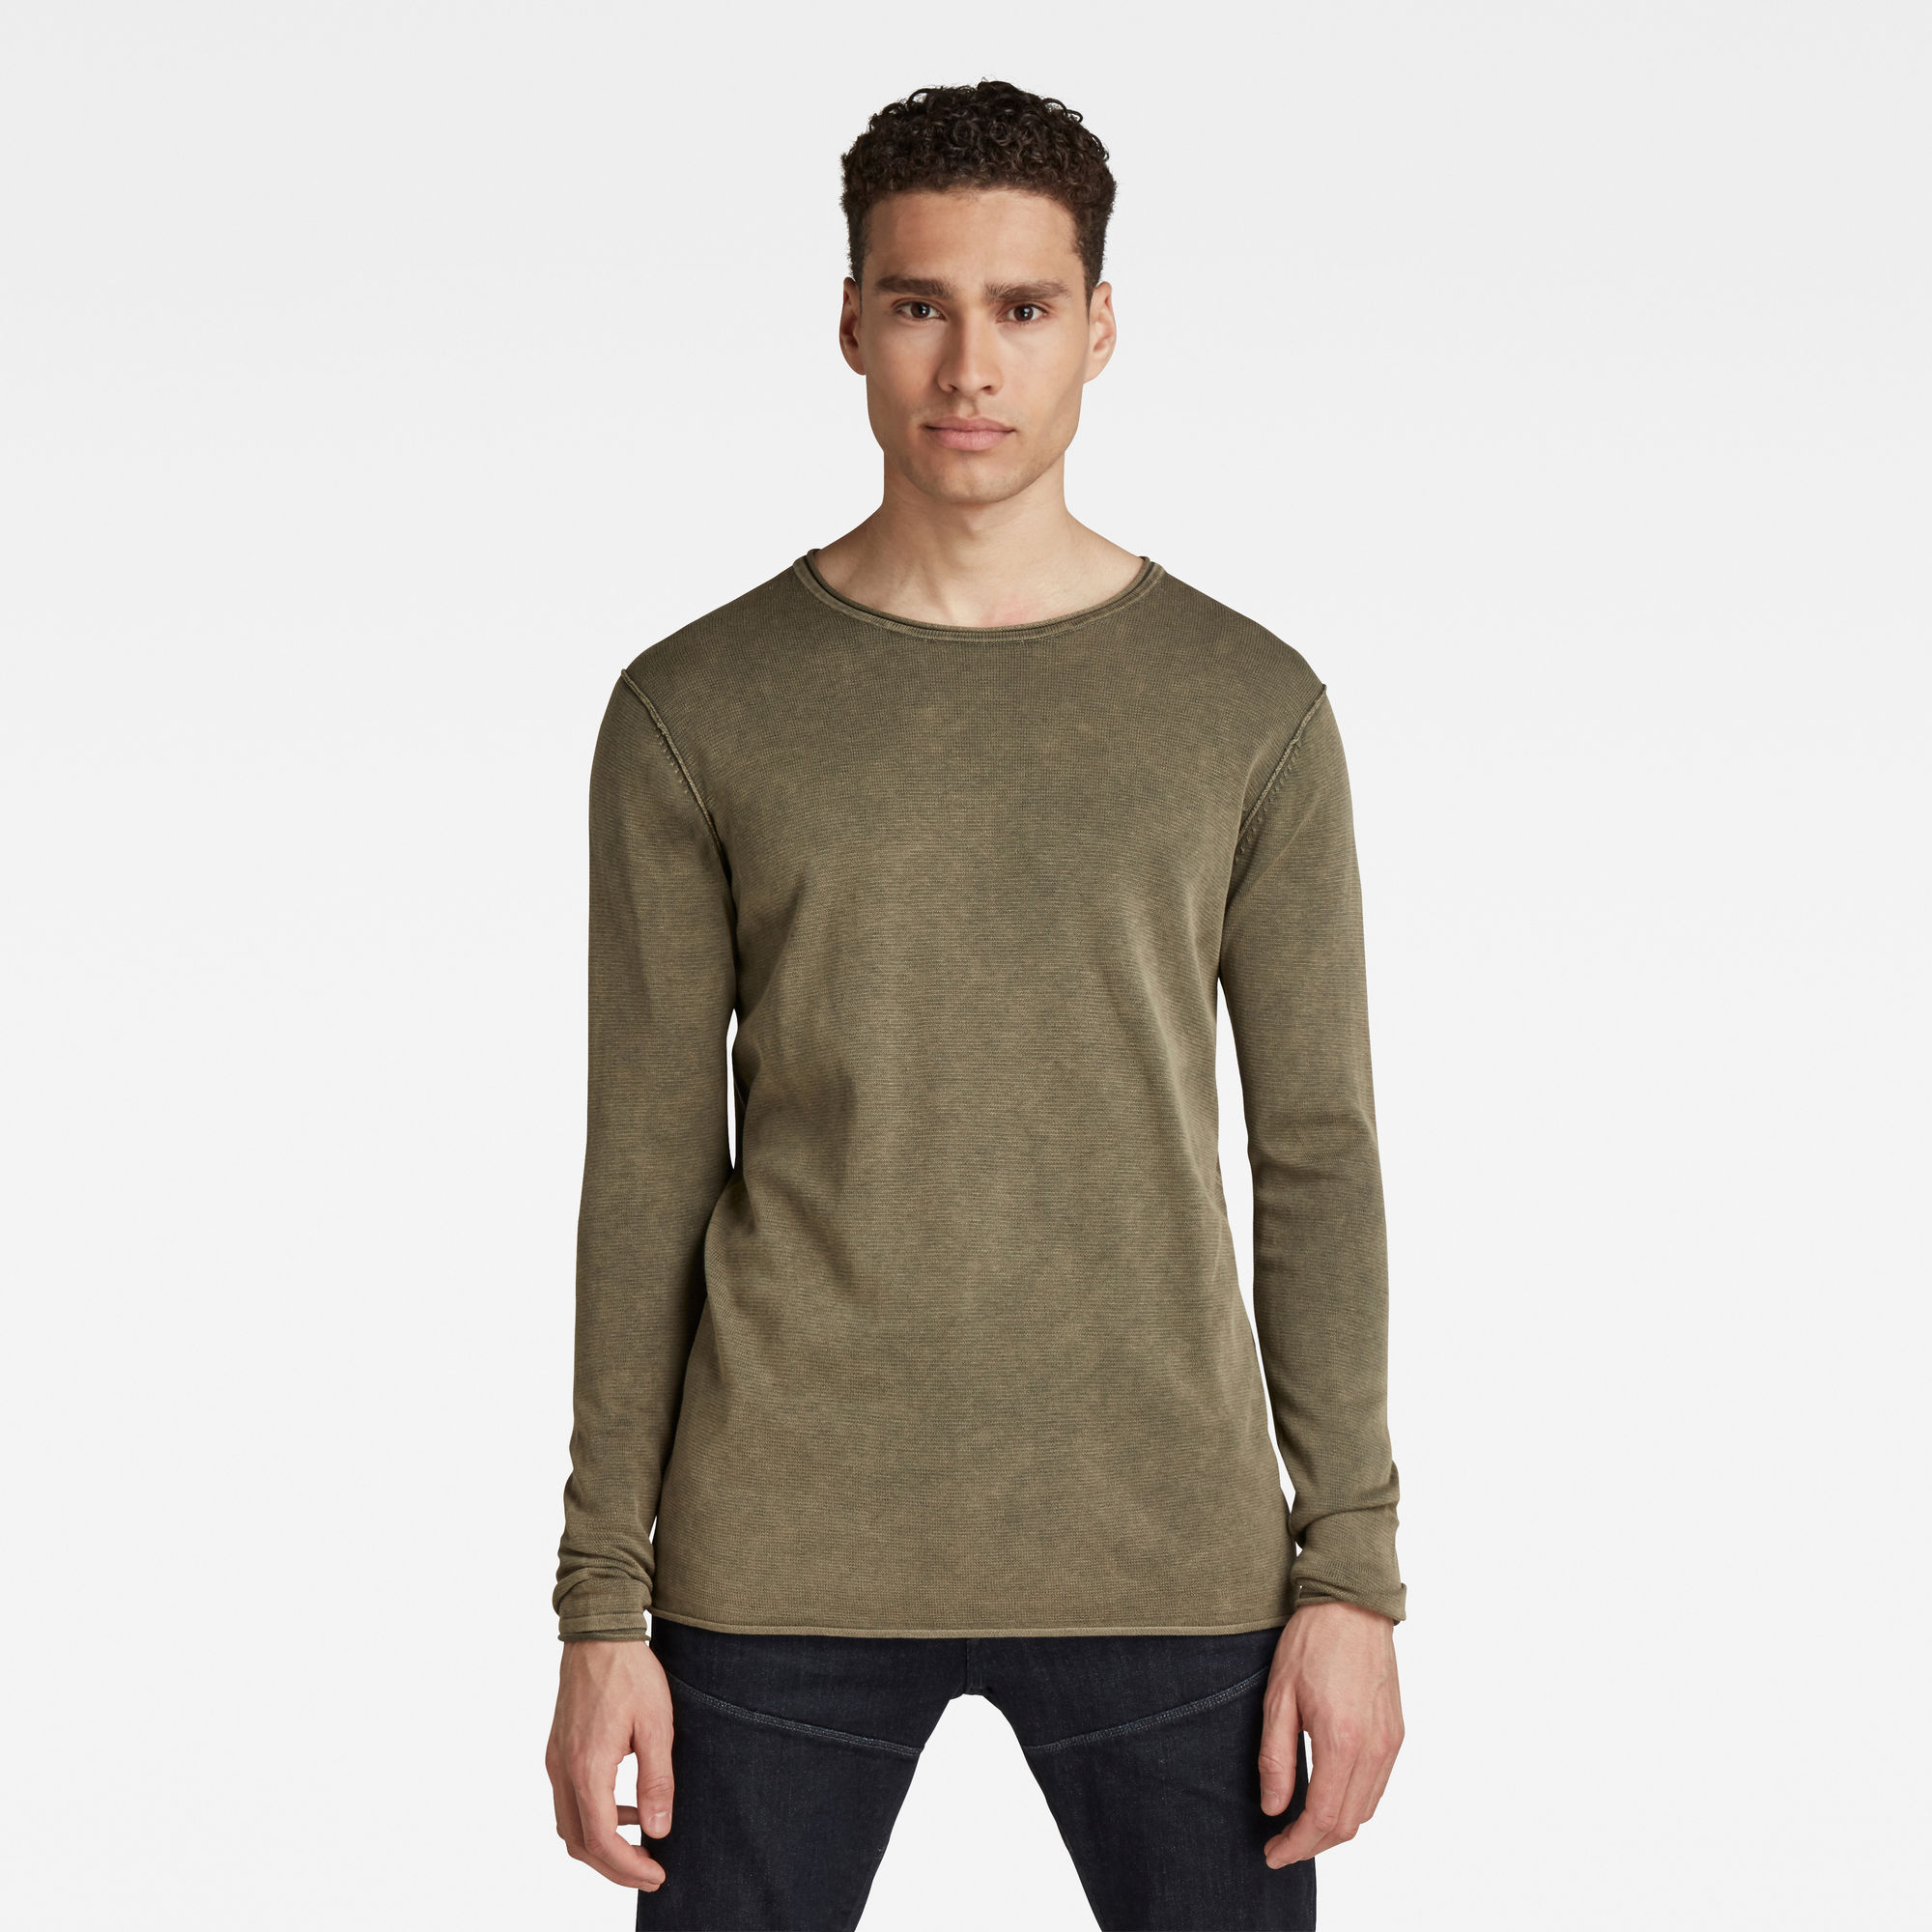 G-Star RAW Hombre Bronek Knitted Sweater Verde